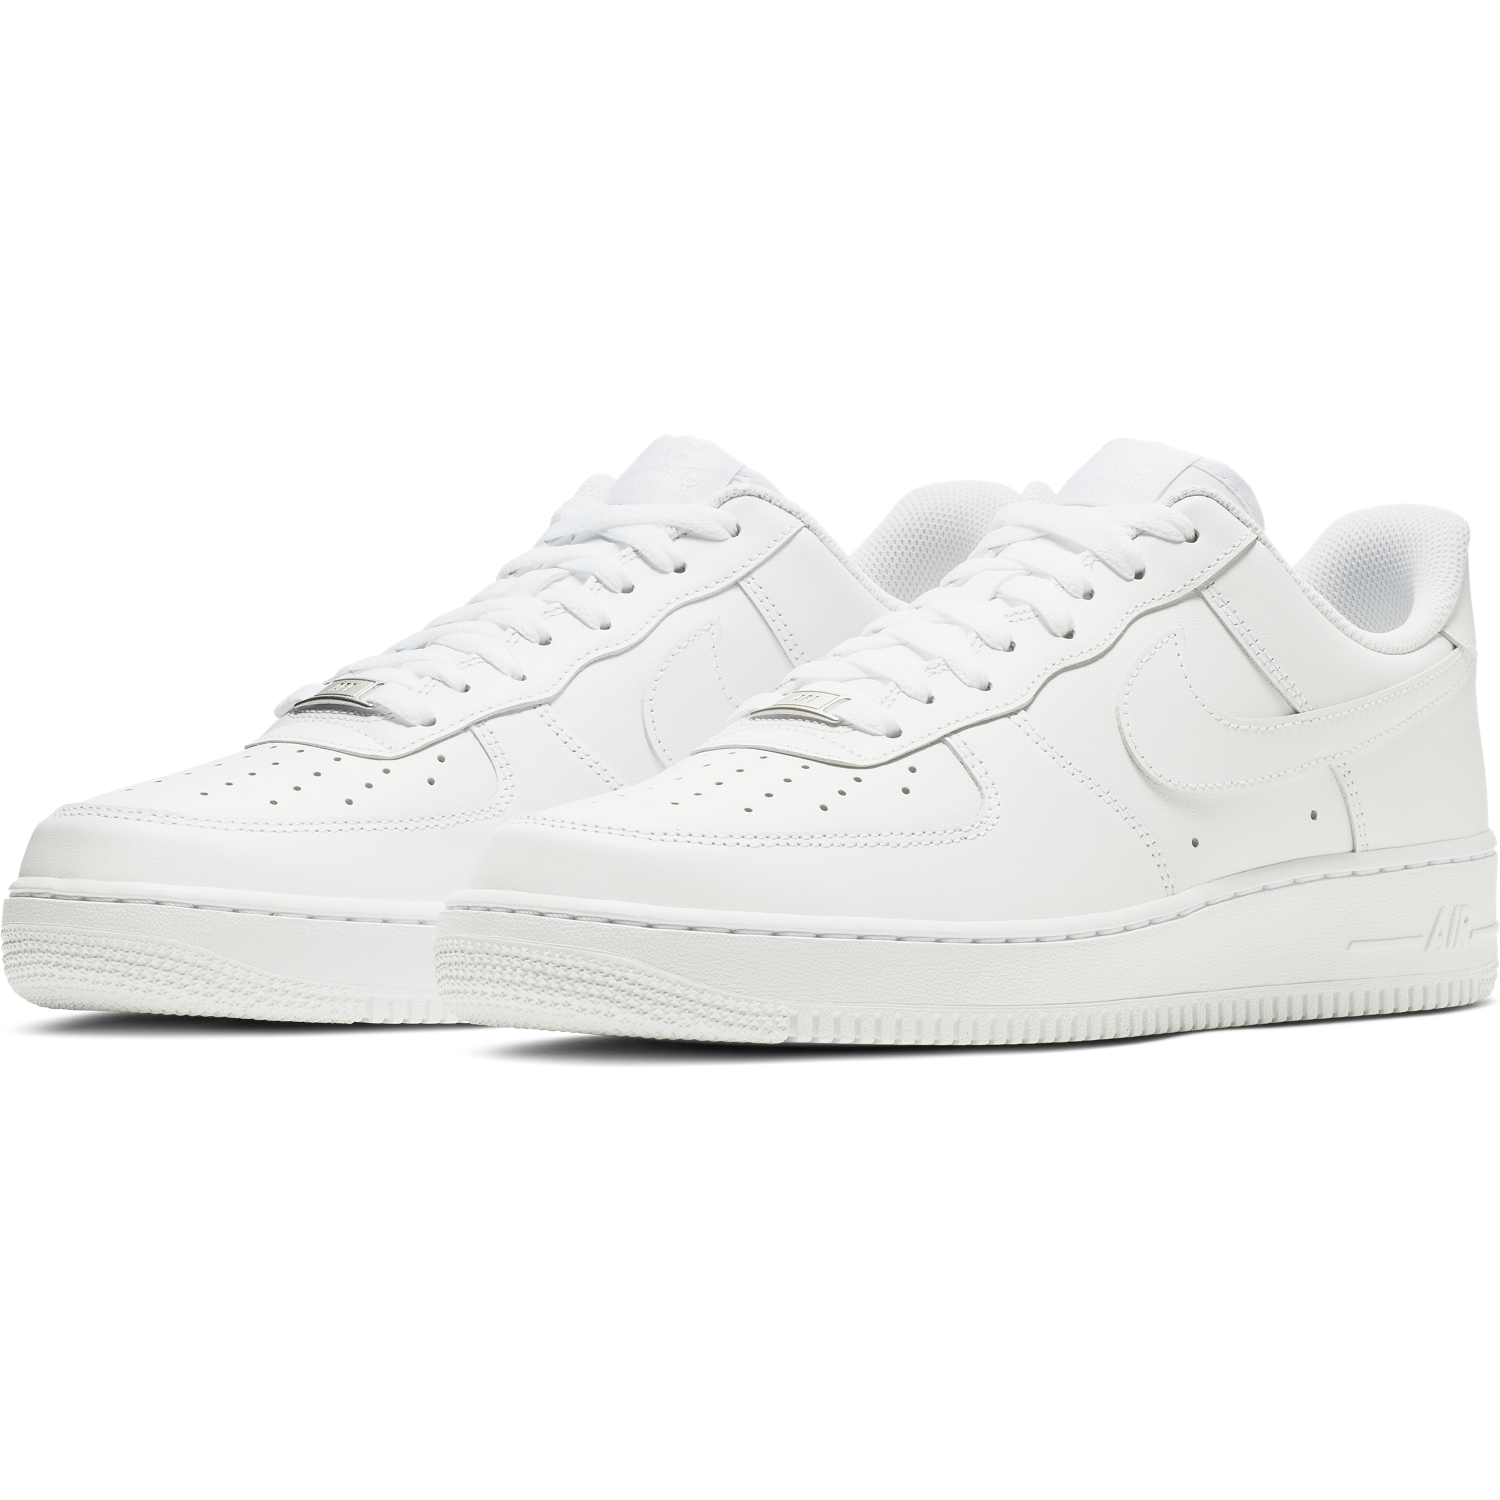 NIKE M'S FOOTWEAR AIR FORCE 1 '07 - WHITE/WHITE